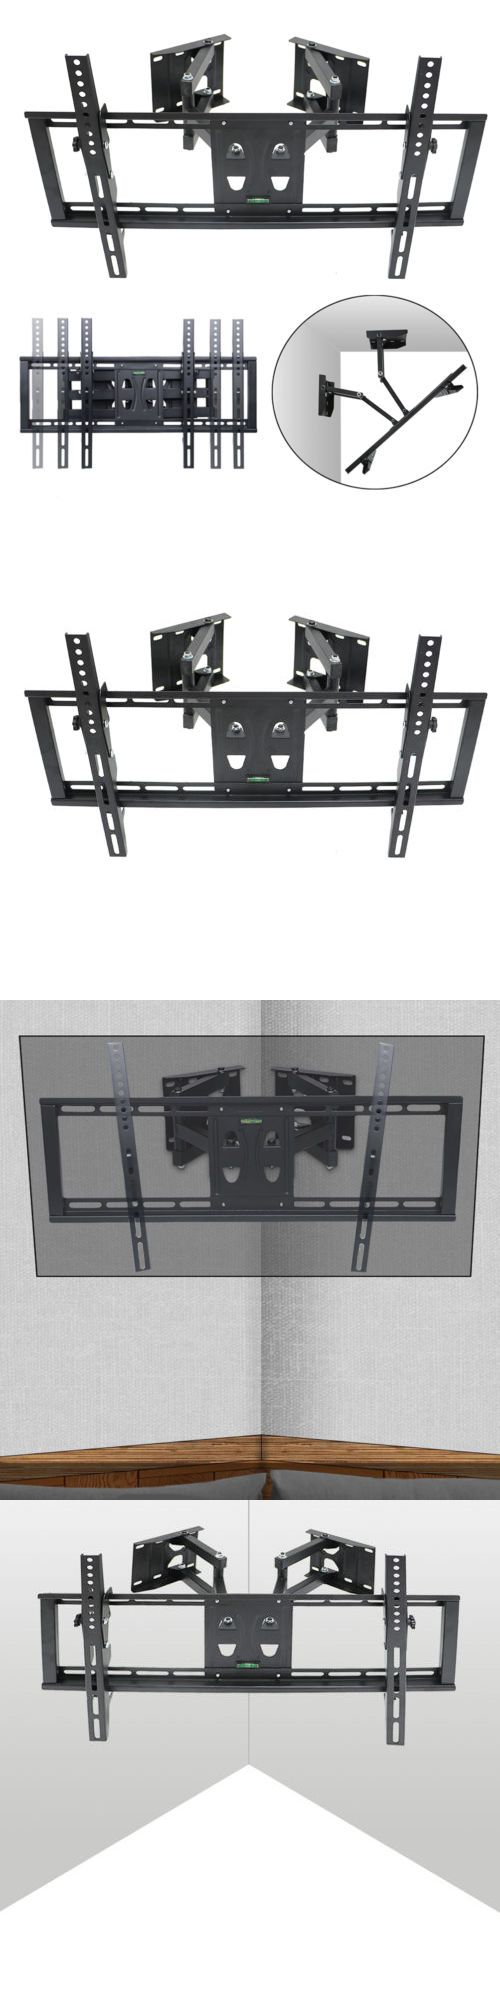 TV Mounts and Brackets: Corner Full Motion Swivel Tv Wall Mount 32 36 40 42 46 50 52 55 60 65 Led 110Lbs -> BUY IT NOW ONLY: $32.92 on eBay!